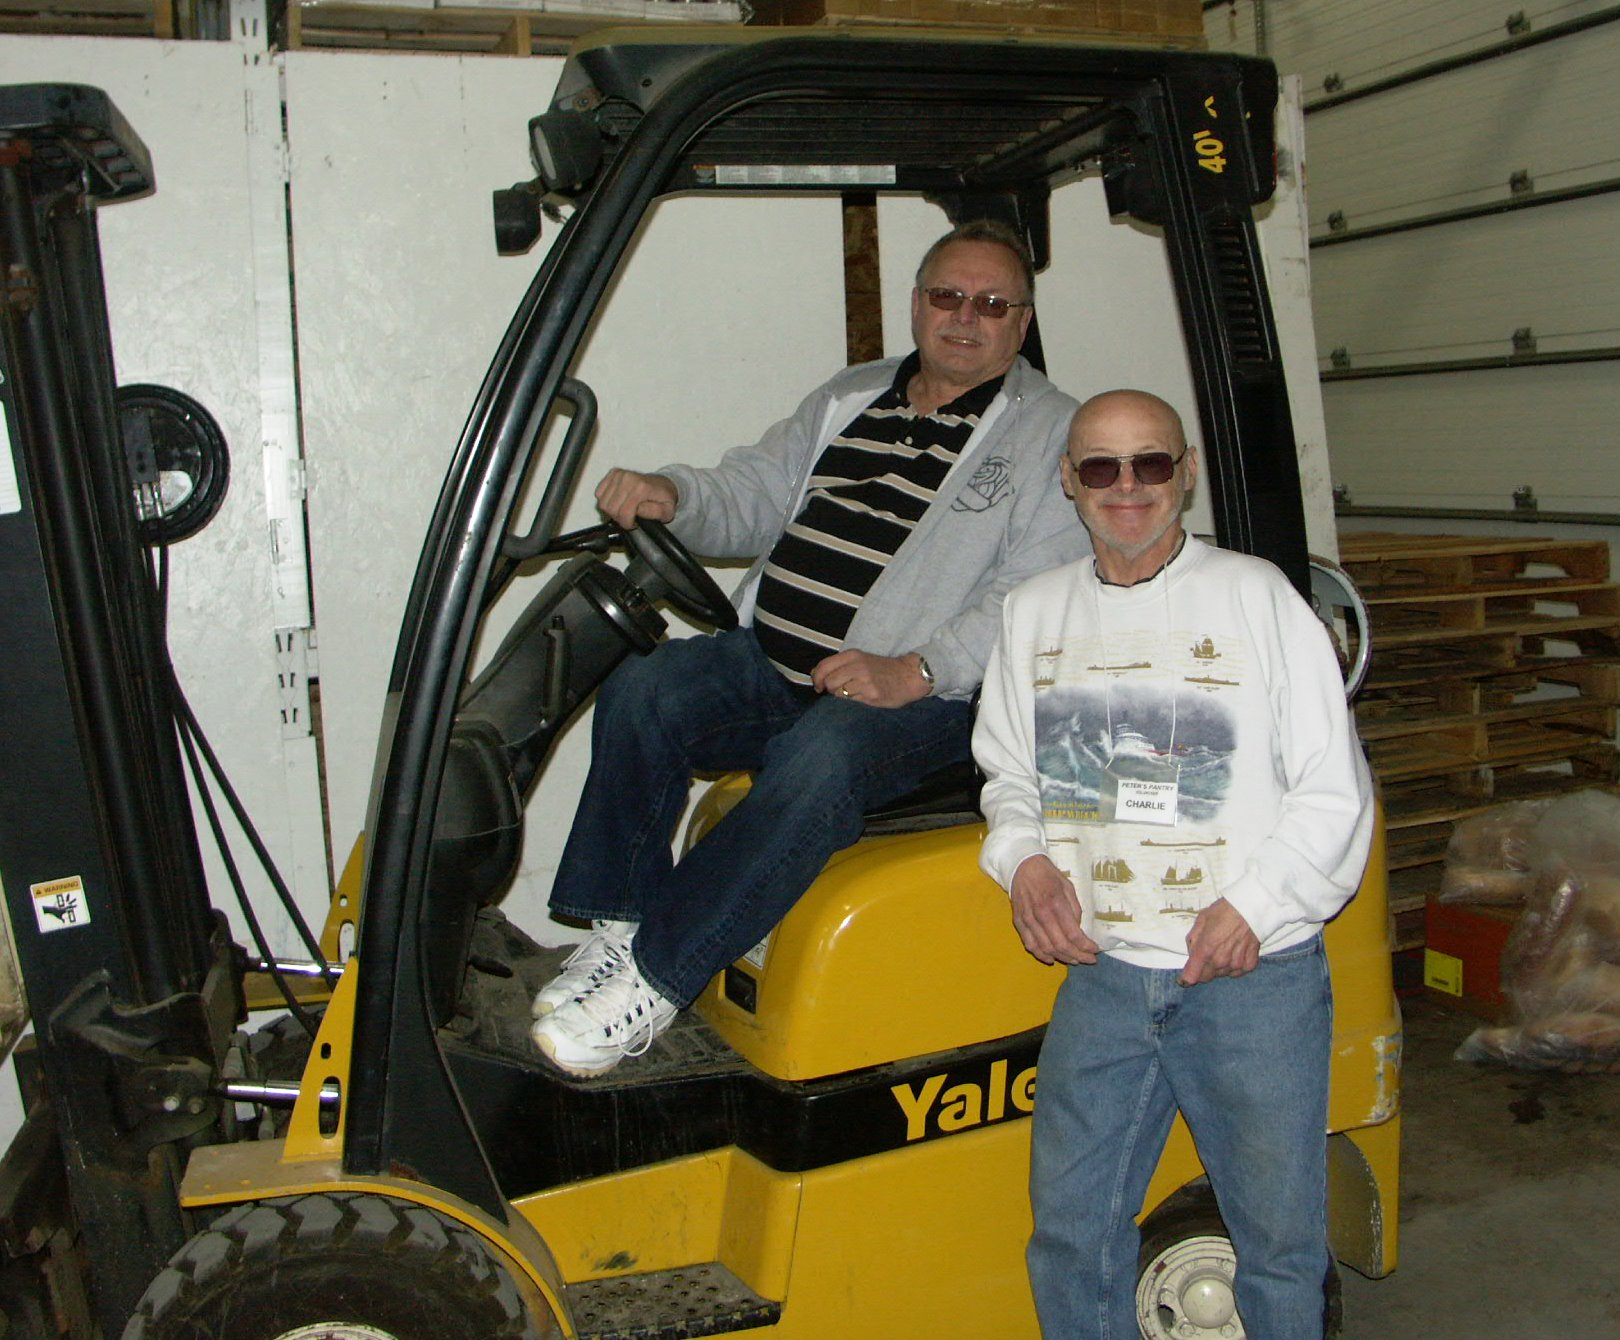 Volunteers with forklift